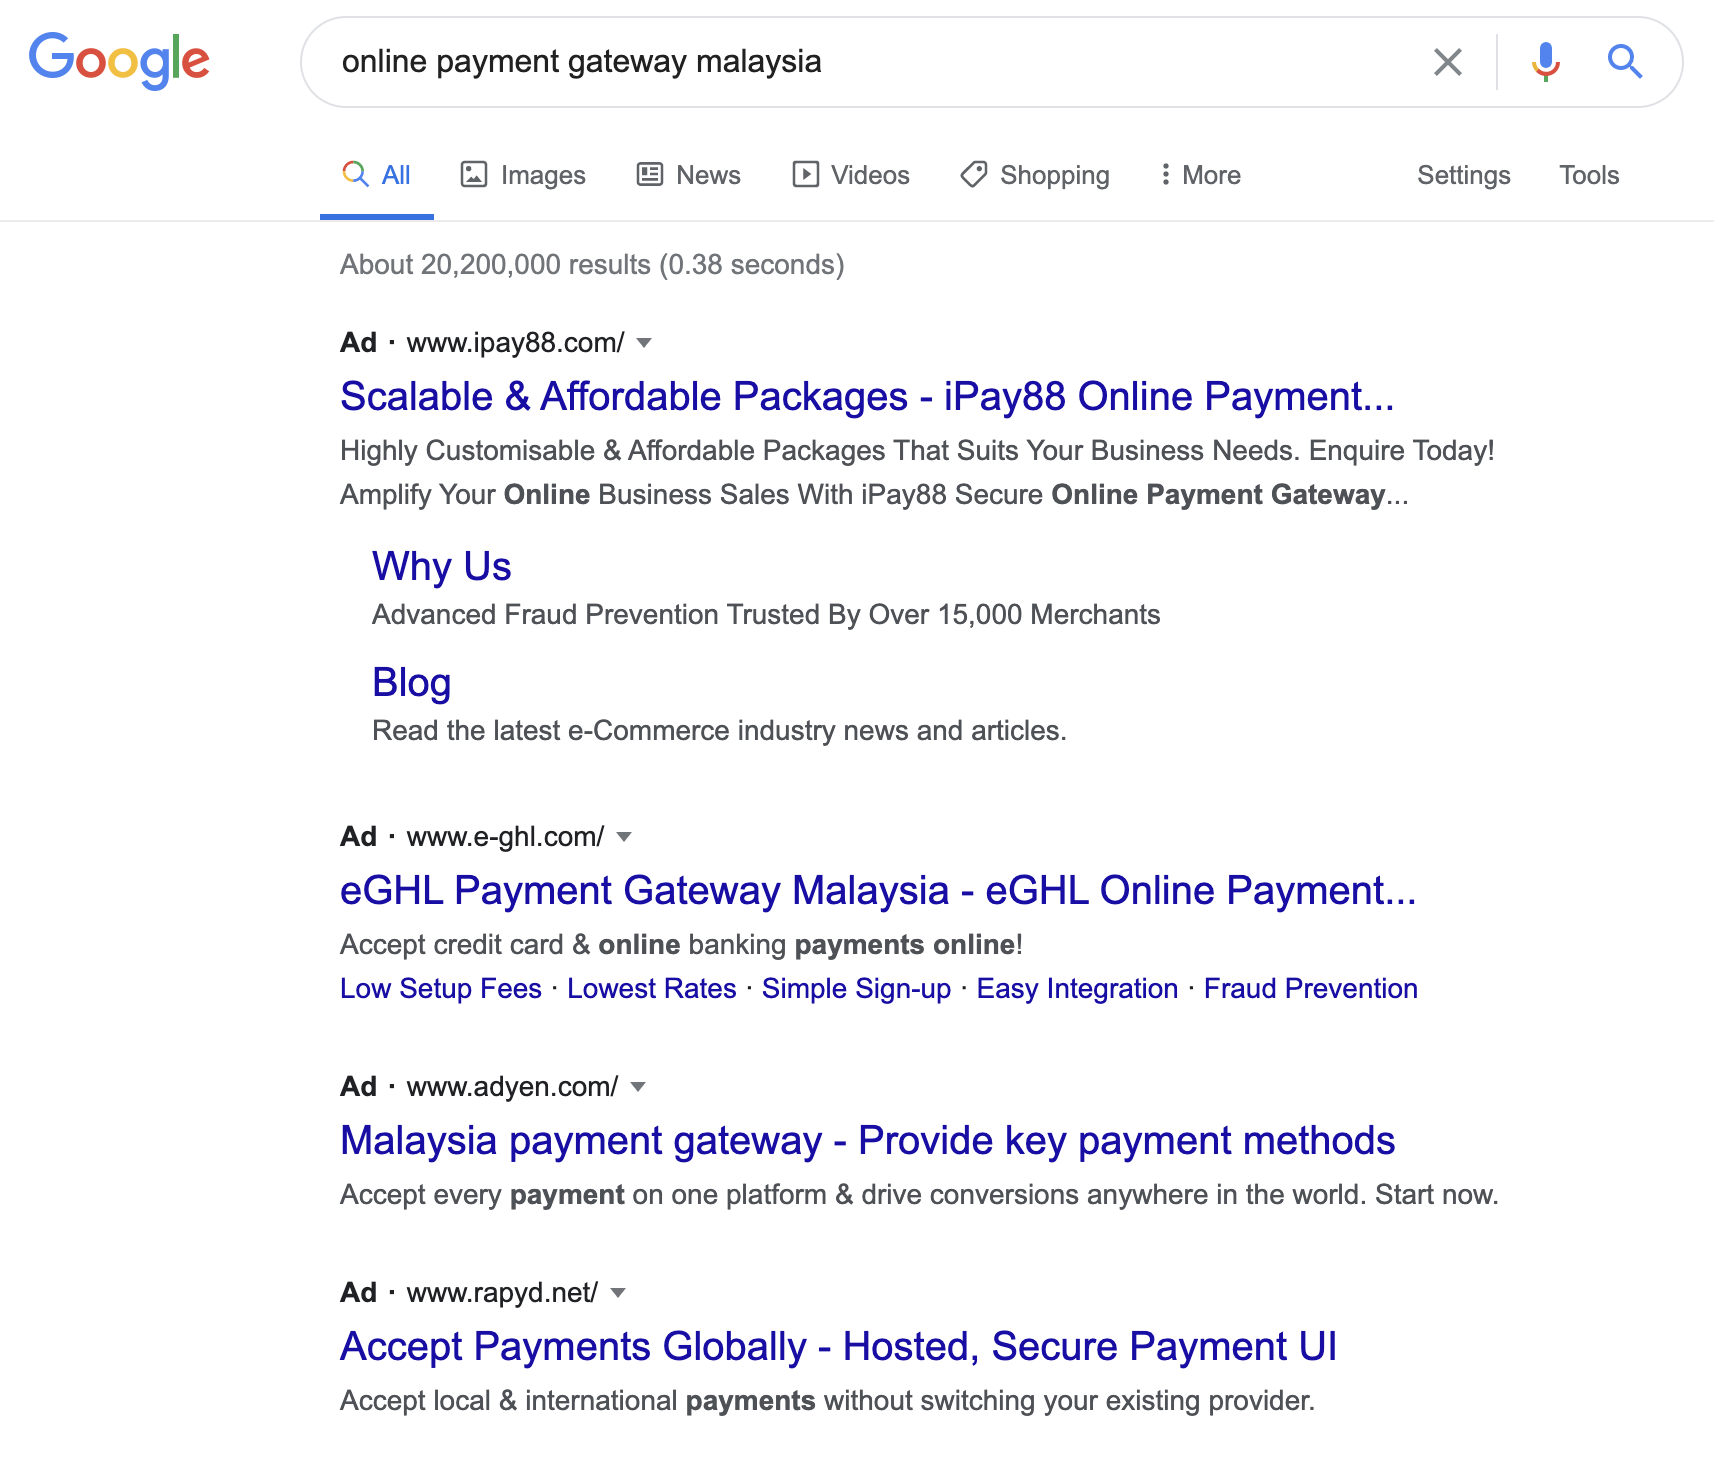 SEM: Online Payment Gateway Malaysia